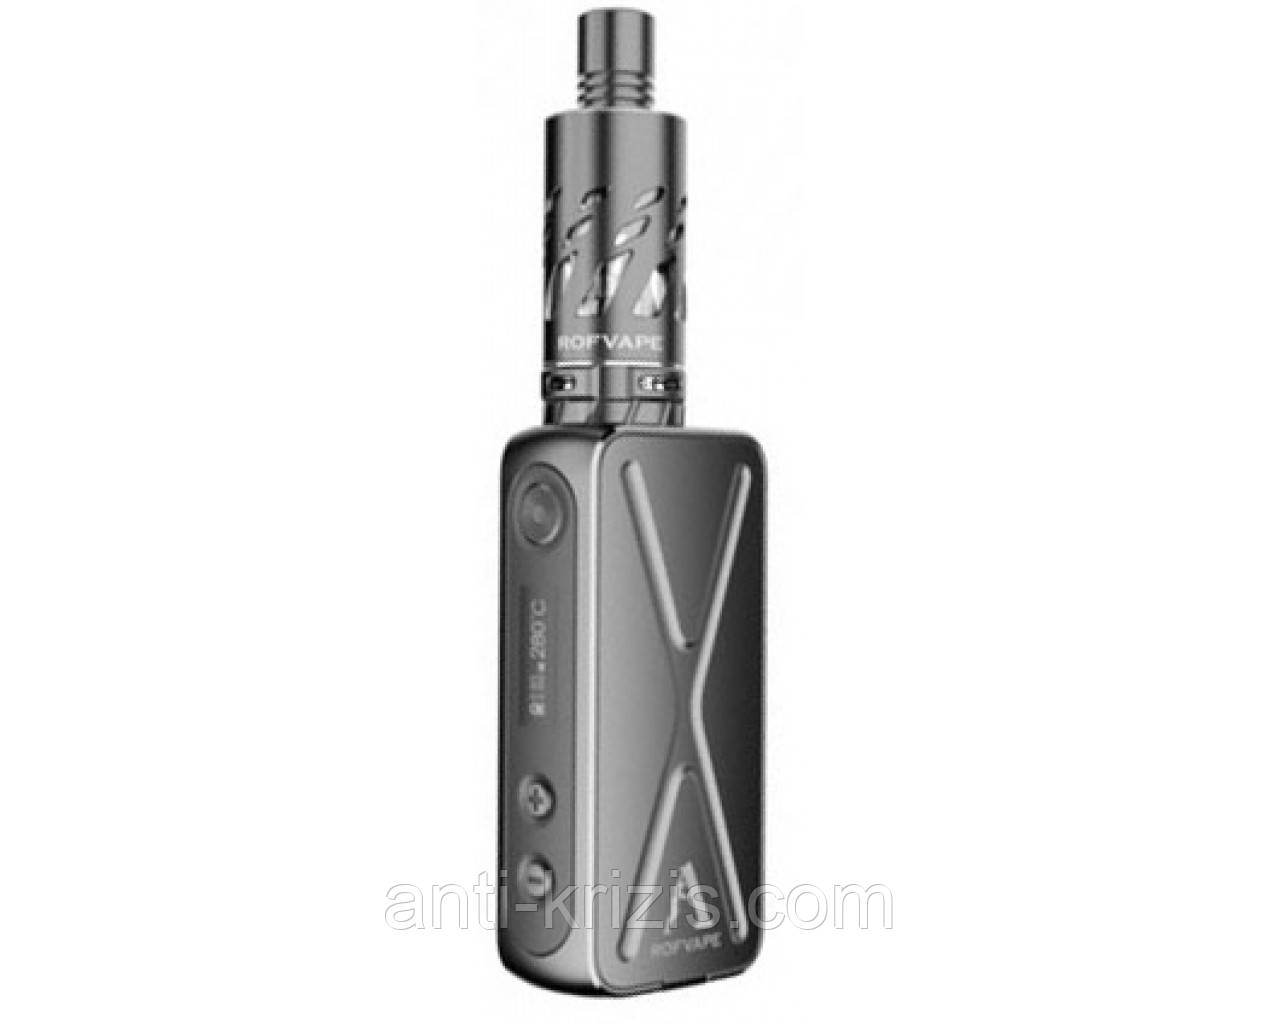 Бокс-мод Rofvape A Box Mini 50W TC Atomizer Kit EC-036 Black